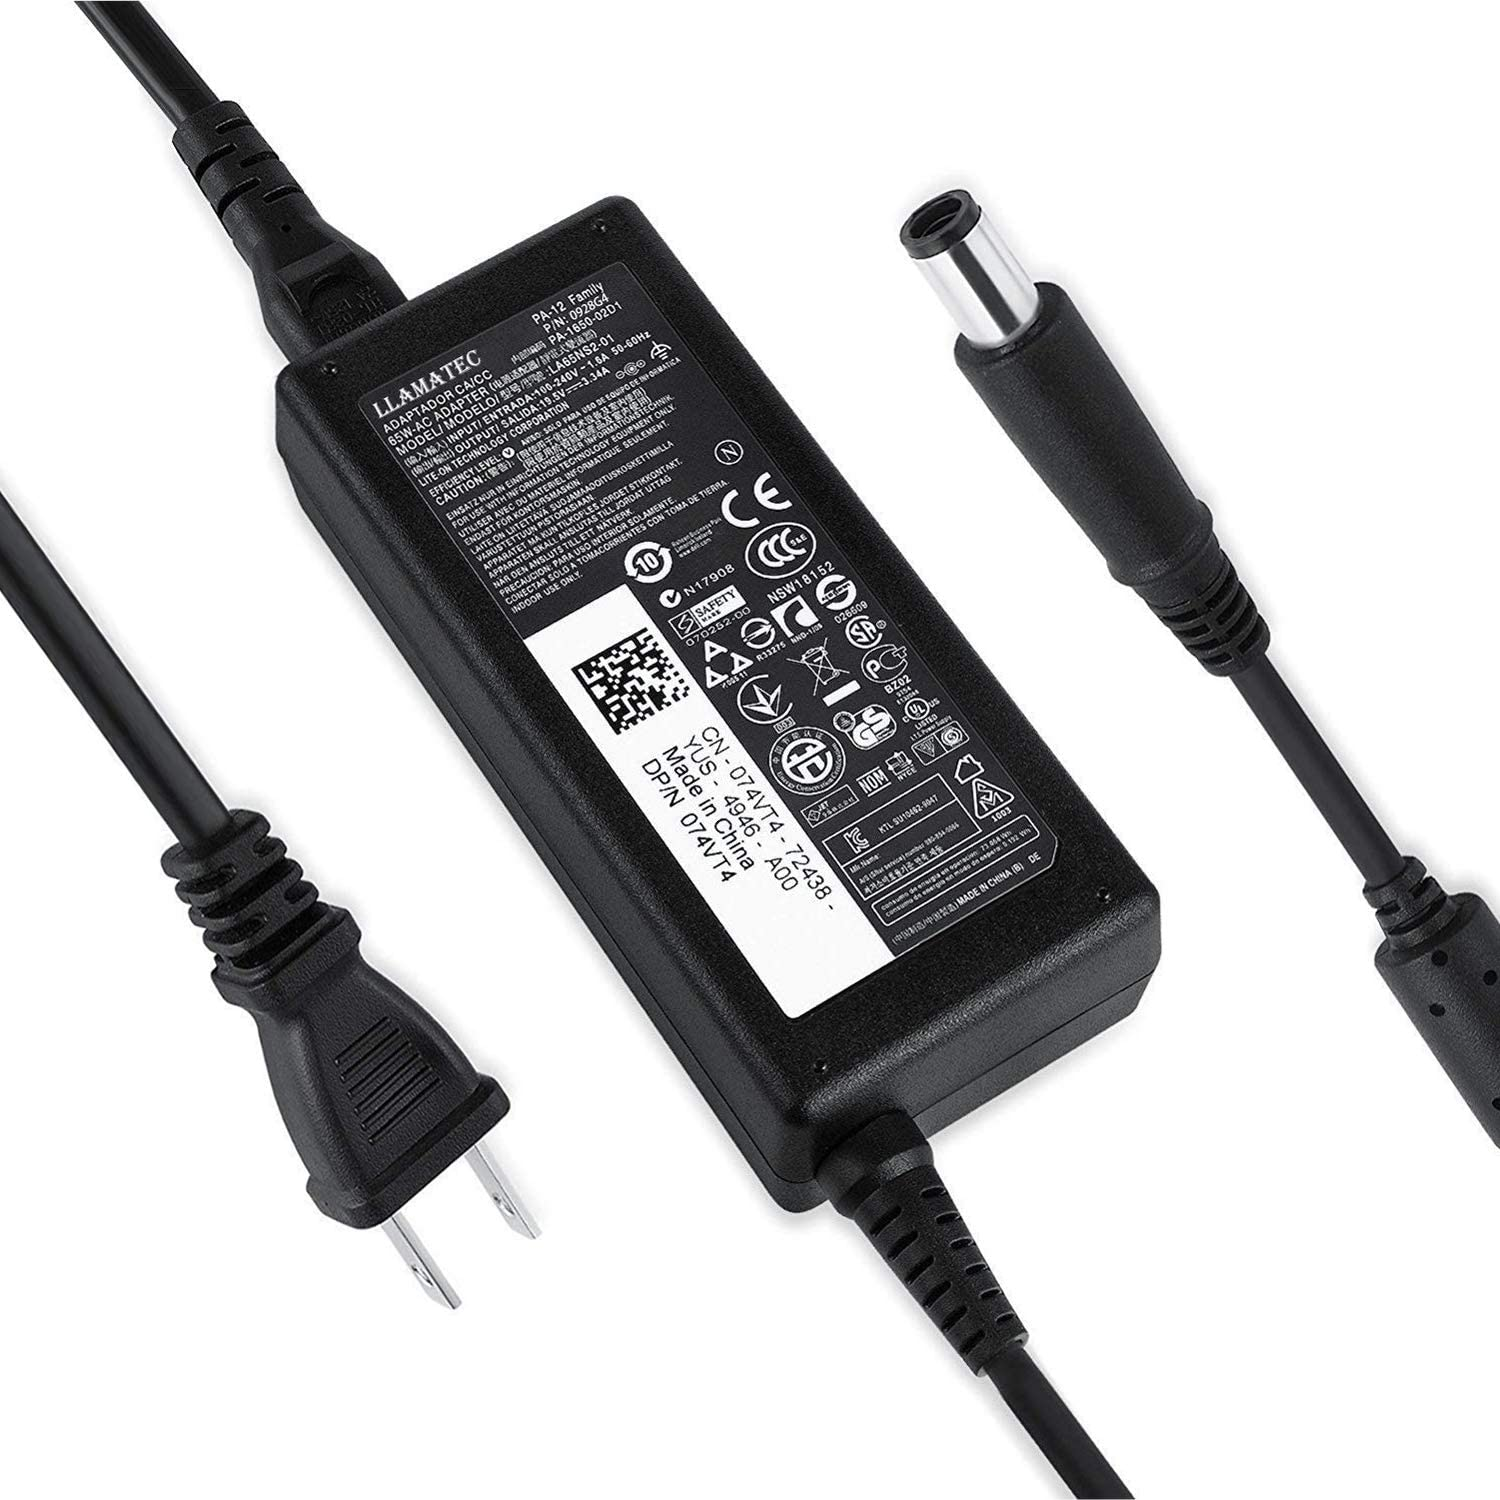 65W AC Charger for Dell Inspiron 15 (3520),Inspiron 15 (3521), Inspiron 15 (3537), Inspiron 15R (5520), Inspiron 15R (5521), Inspiron 15R (7520), Inspiron 15R N5110 Laptop Power Supply Adapter Cord